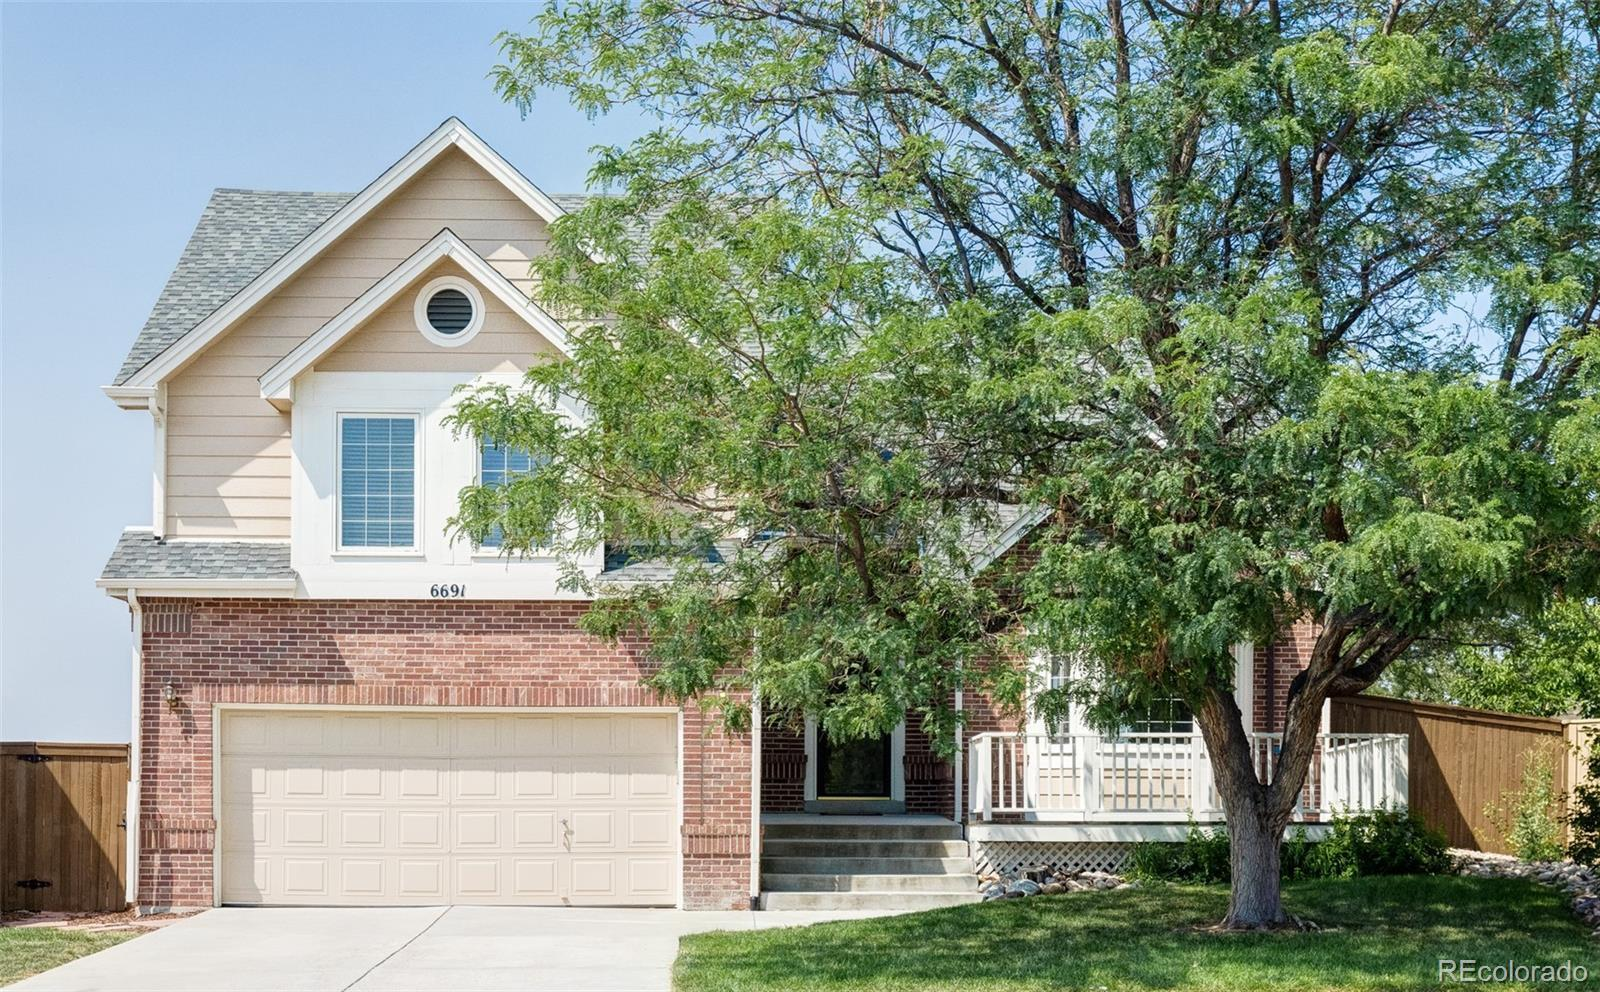 6691 Yale Drive, Highlands Ranch, CO 80130 - #: 2136941